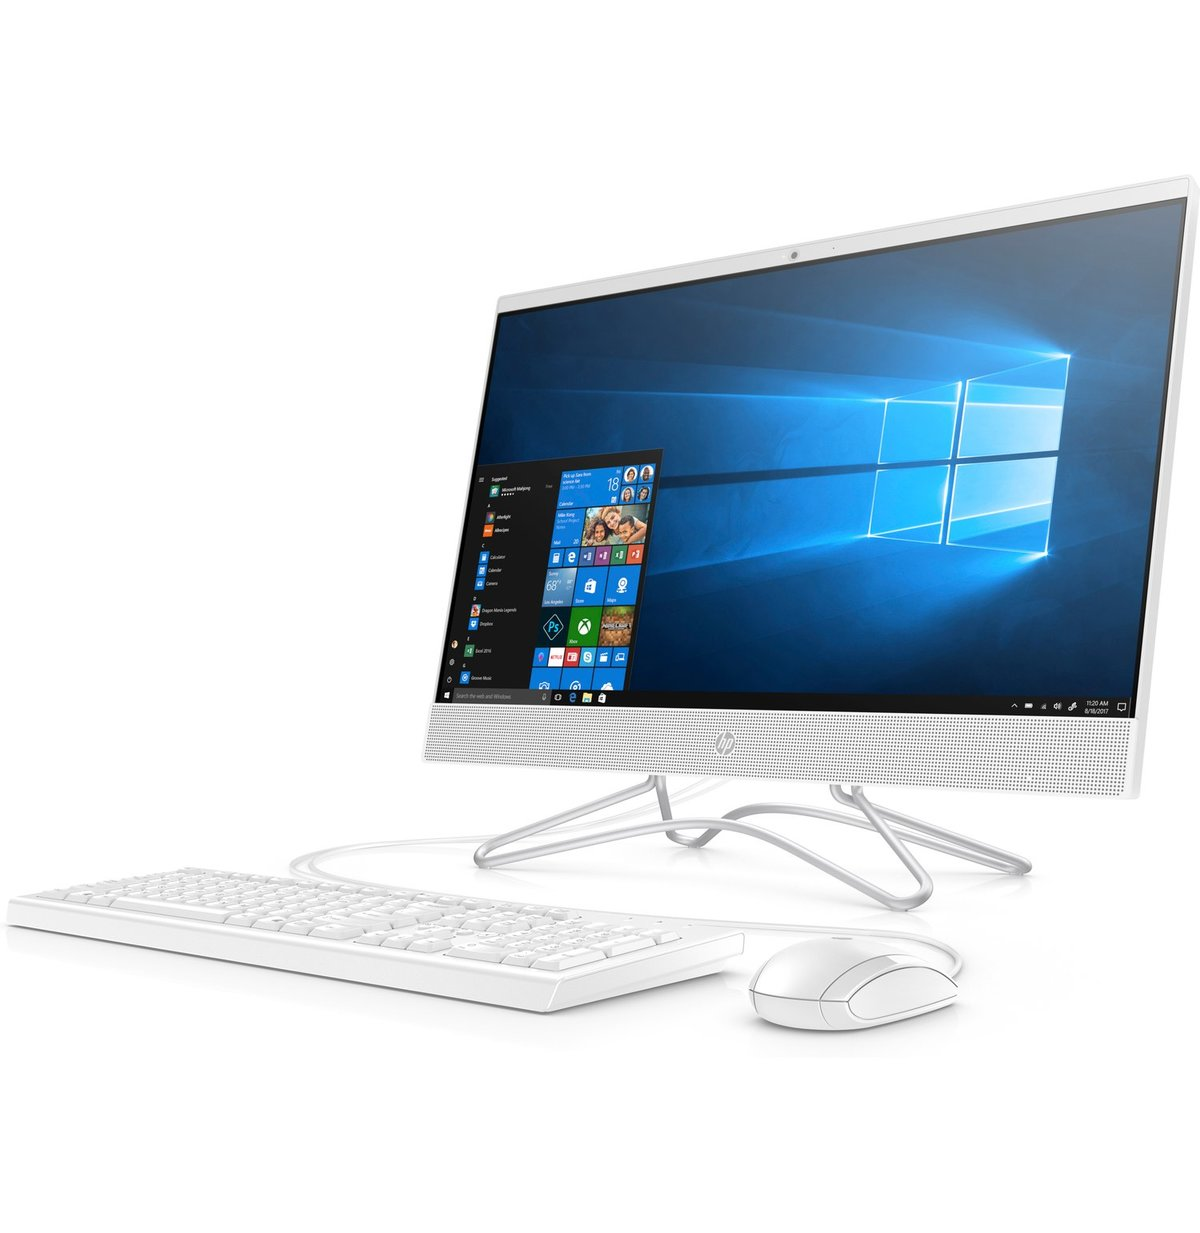 diapositive 1 sur 3,agrandir l'image, hp all-in-one 24-f0074nf